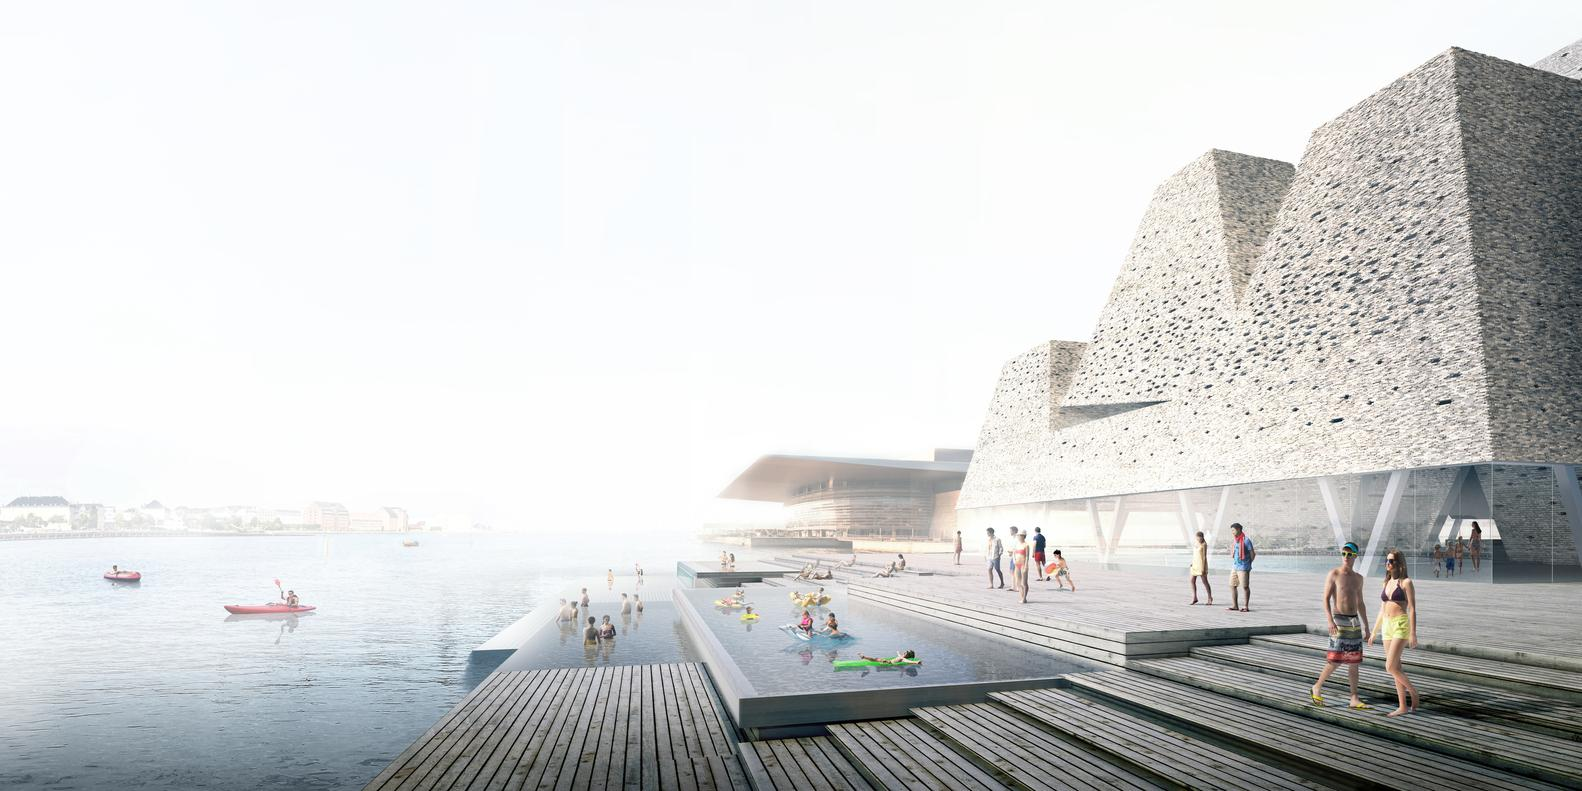 Kengo Kuma wins competition for Danish Water Culture Center as Copenhagen's cultural masterplan takes shape